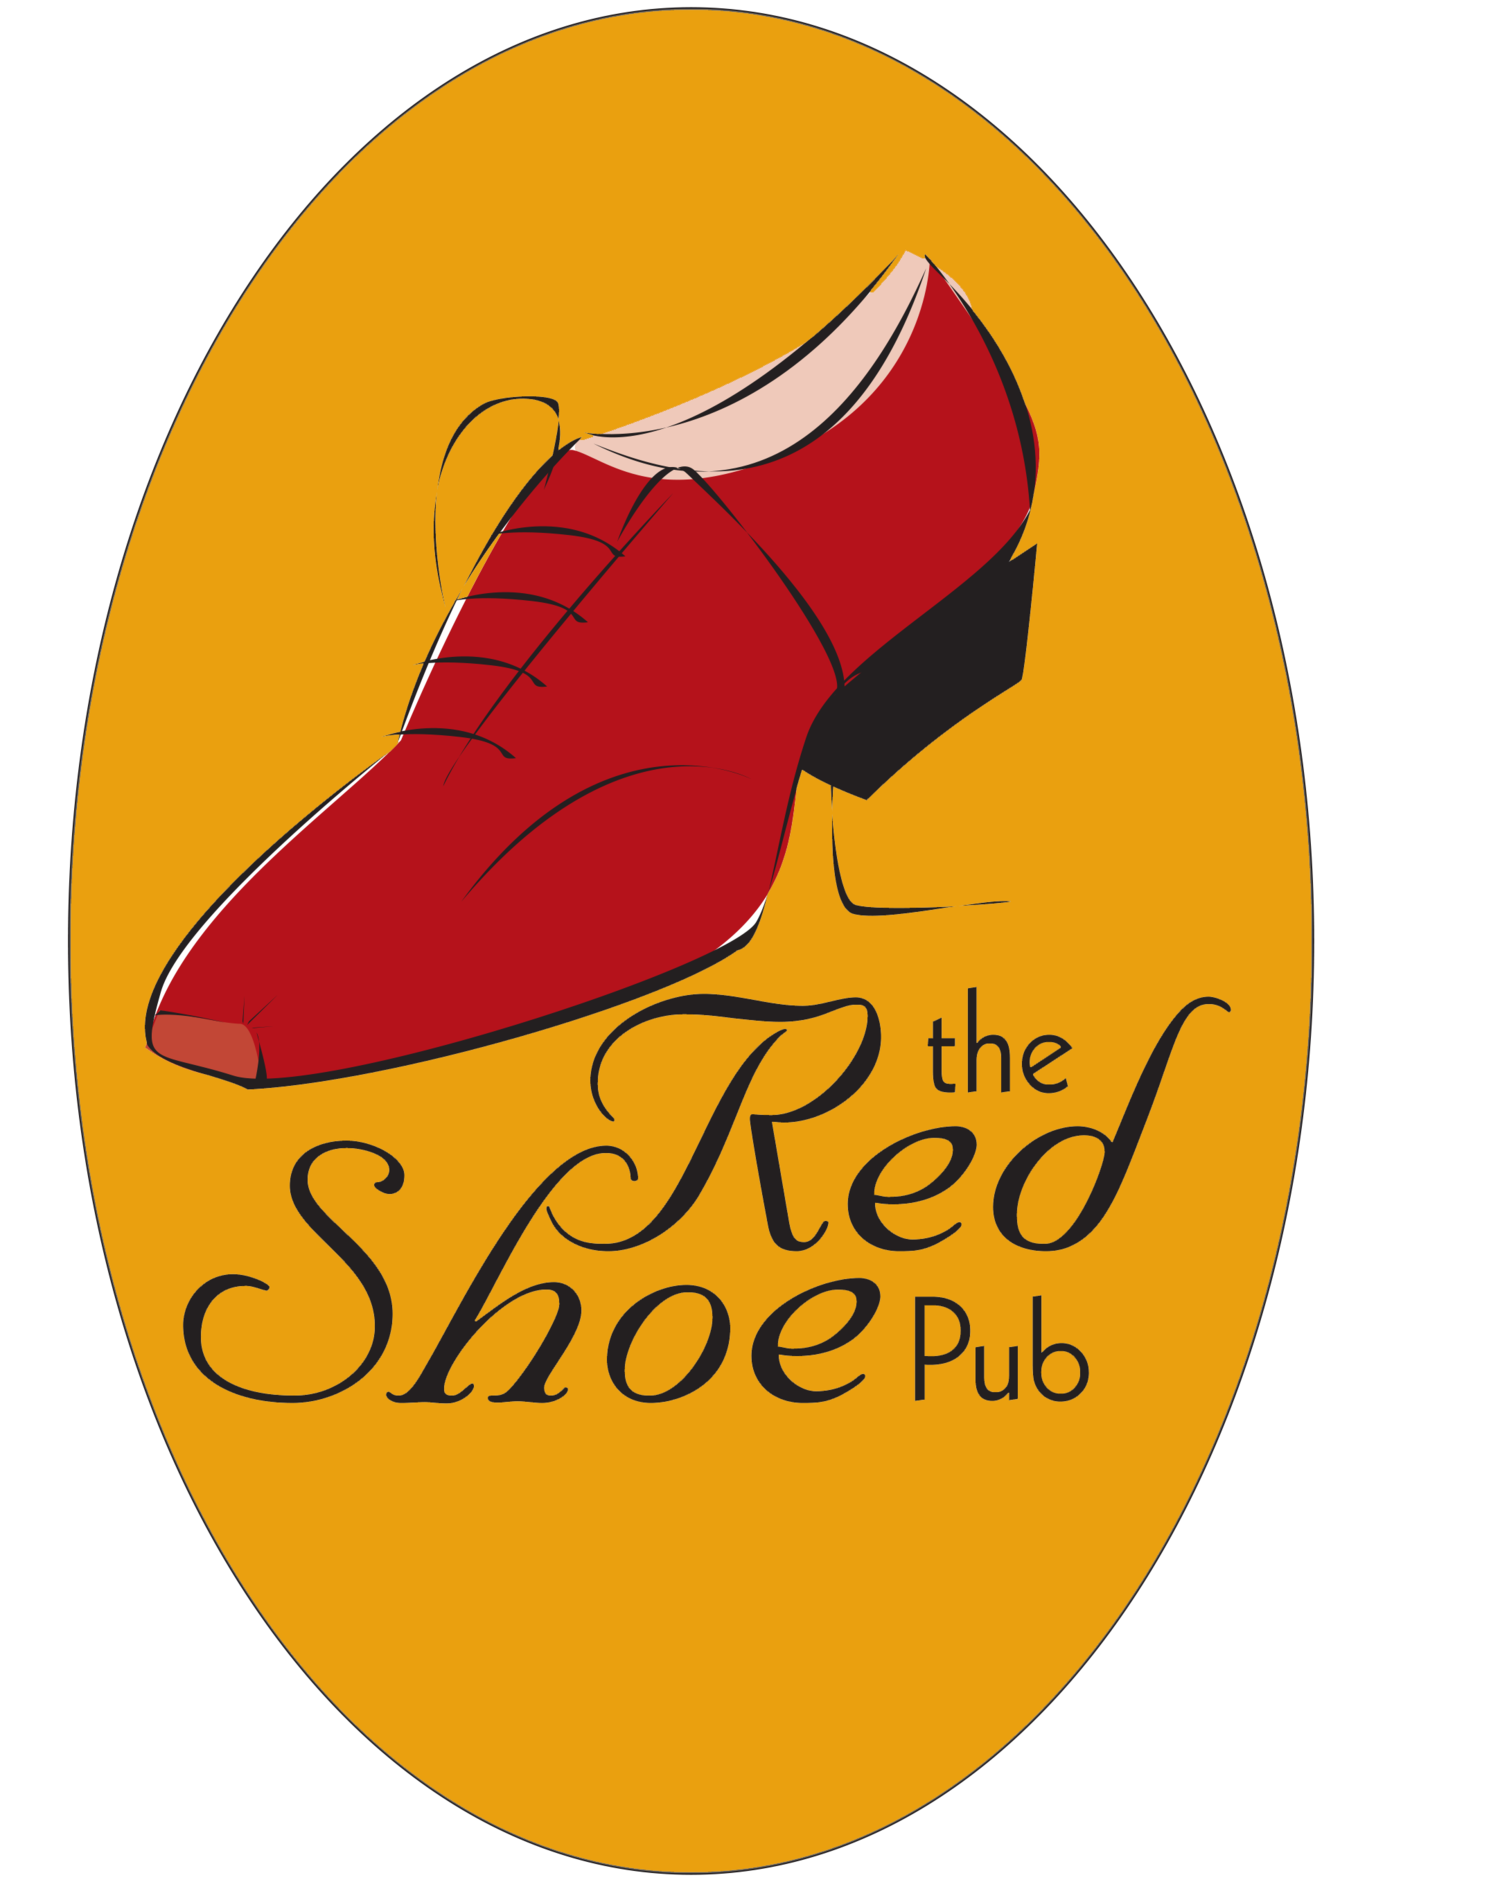 RED SHOE PUB